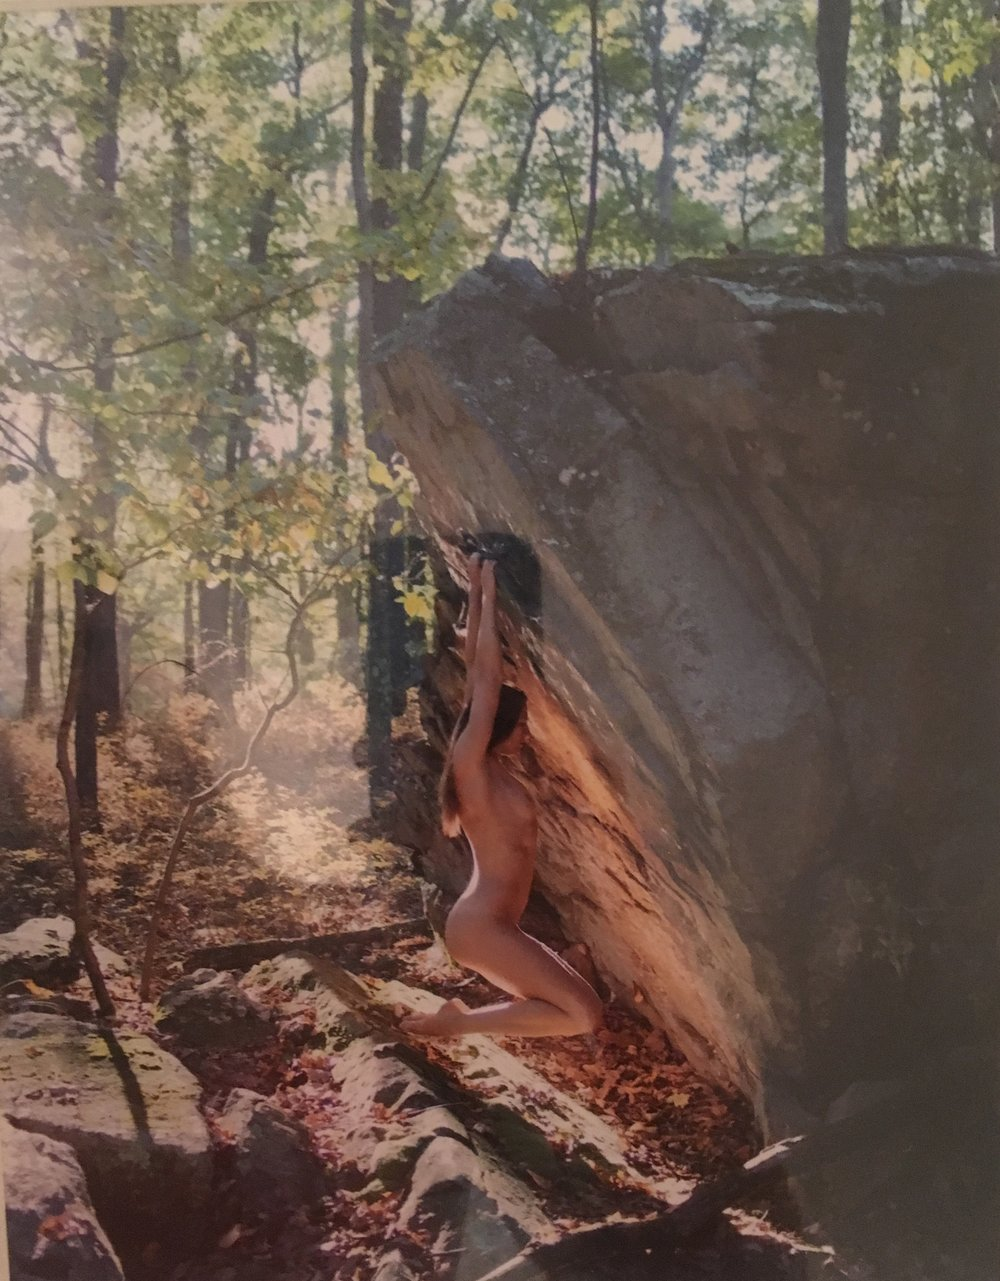 Stephanie Chisholm_Spencer Tunick_Untitled_8x10_Signed Pigment Print_2017_$800 print, $875 in frame.jpg